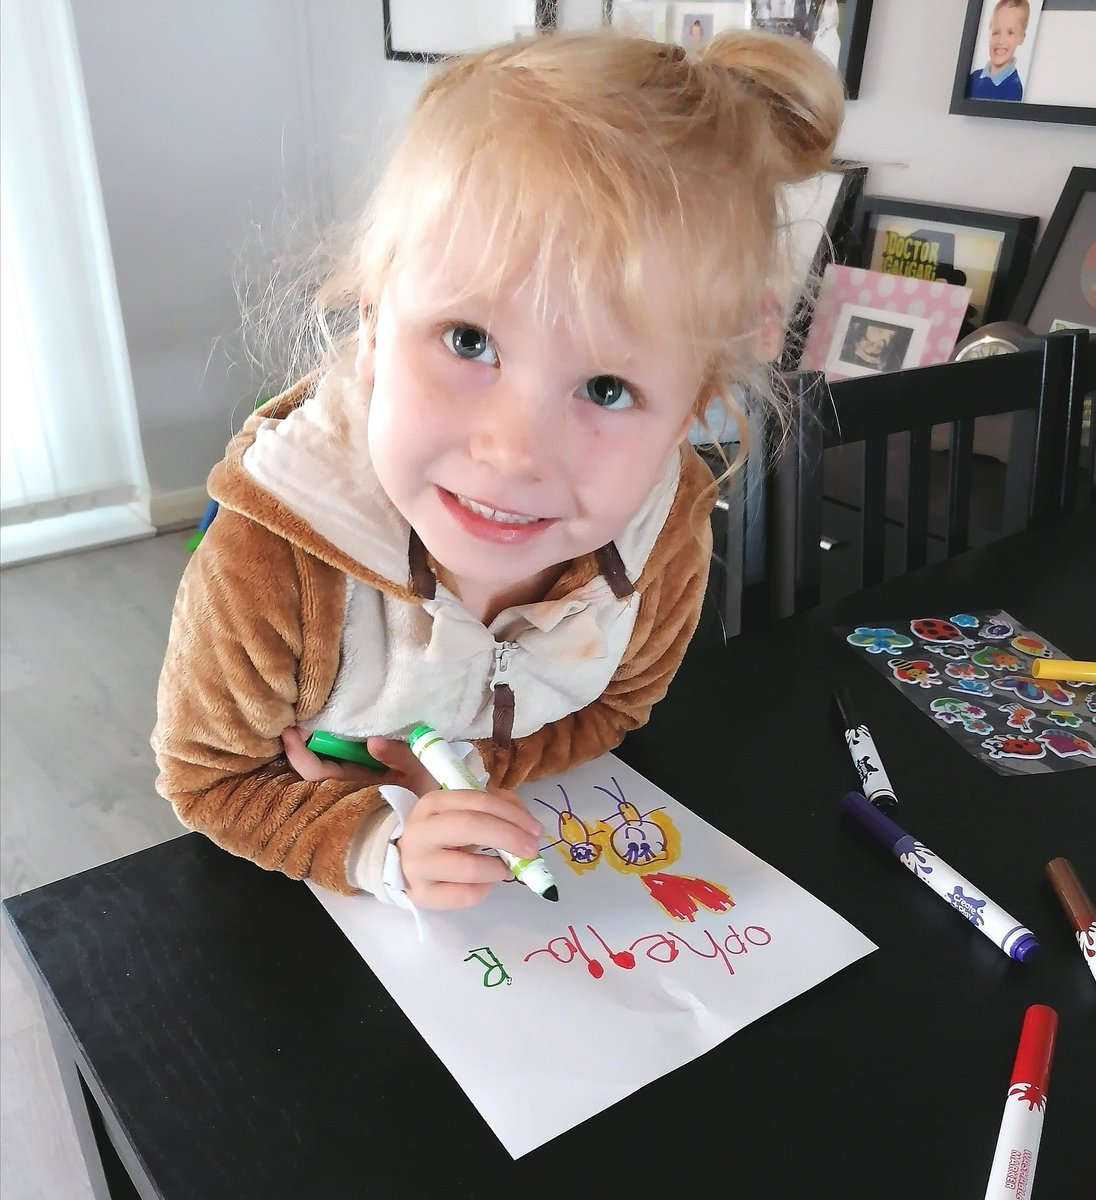 @GwaunmeisgynFP @GwaunmeisgynFP Ophelia drawing pictures of her best friend Alaya and her brother Radley this morning. pic.twitter.com/xfS8QQ20oN